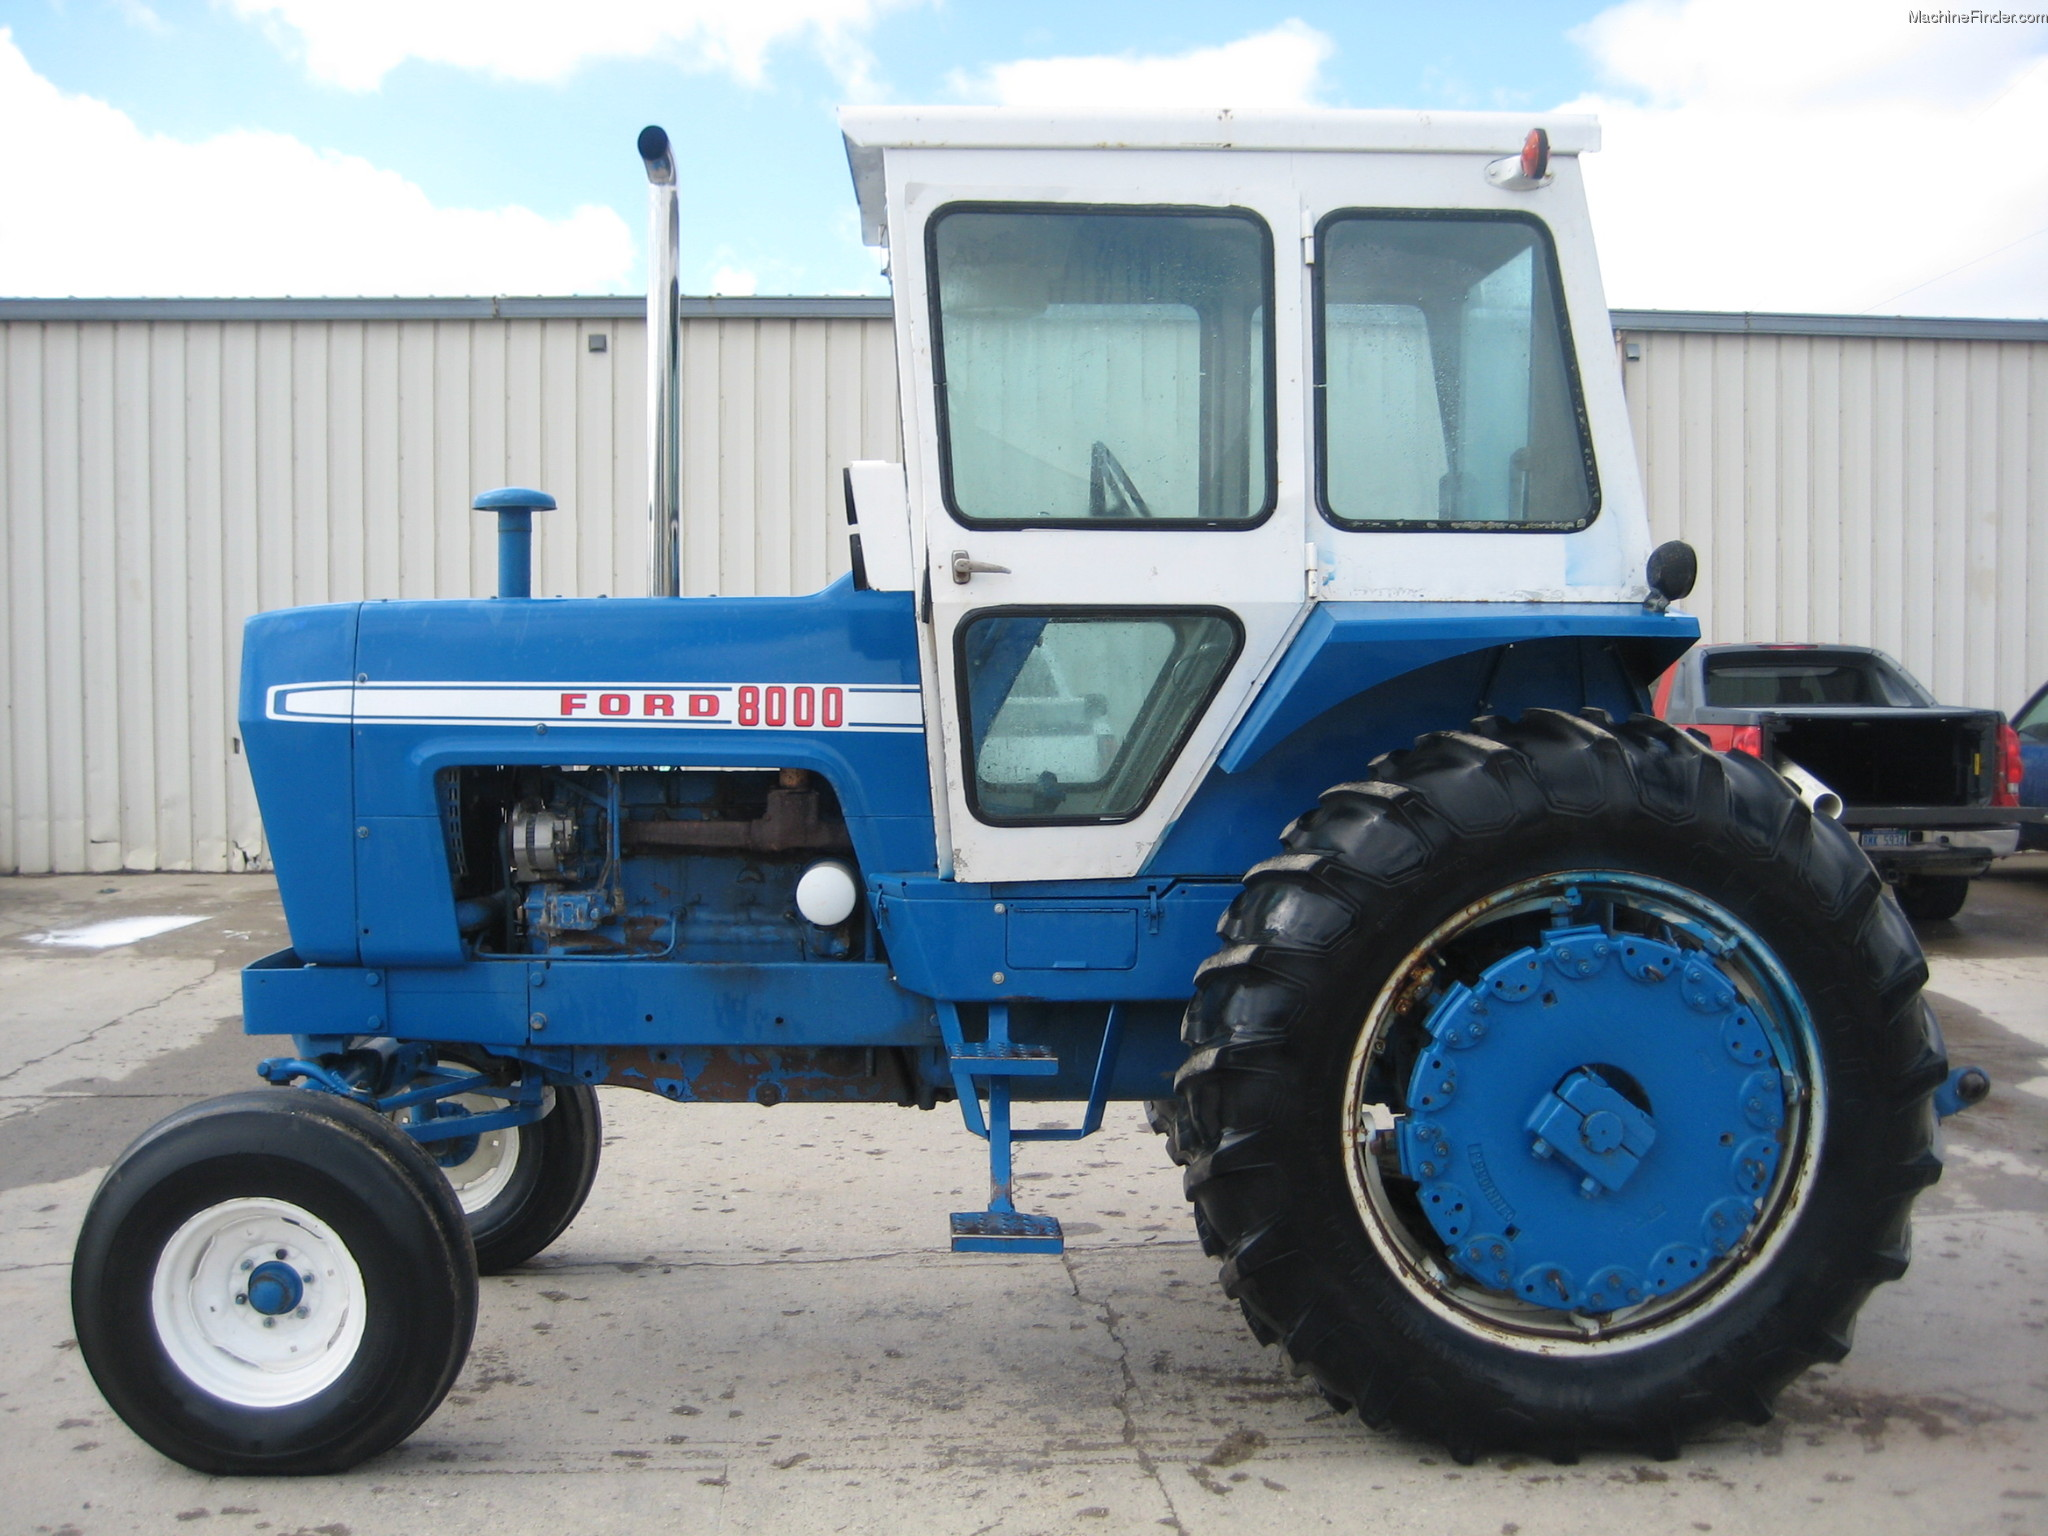 Ford 8000 Tractor Diagrams : Used farm agricultural equipment john deere machinefinder